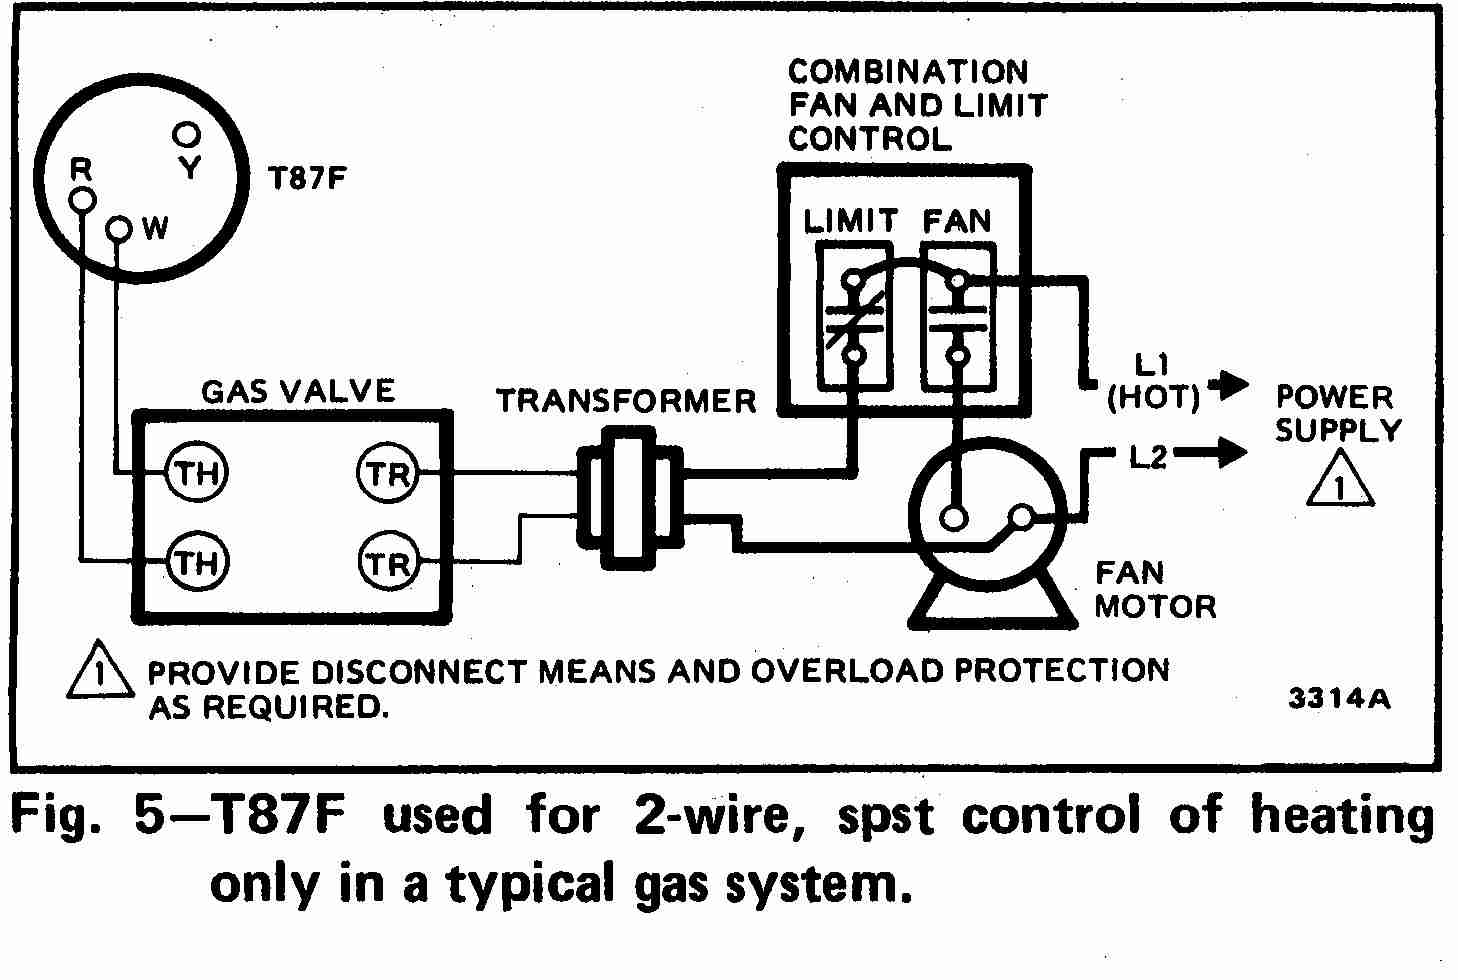 TT_T87F_0002_2Wg_DJF room thermostat wiring diagrams for hvac systems wall heater wiring diagram at virtualis.co